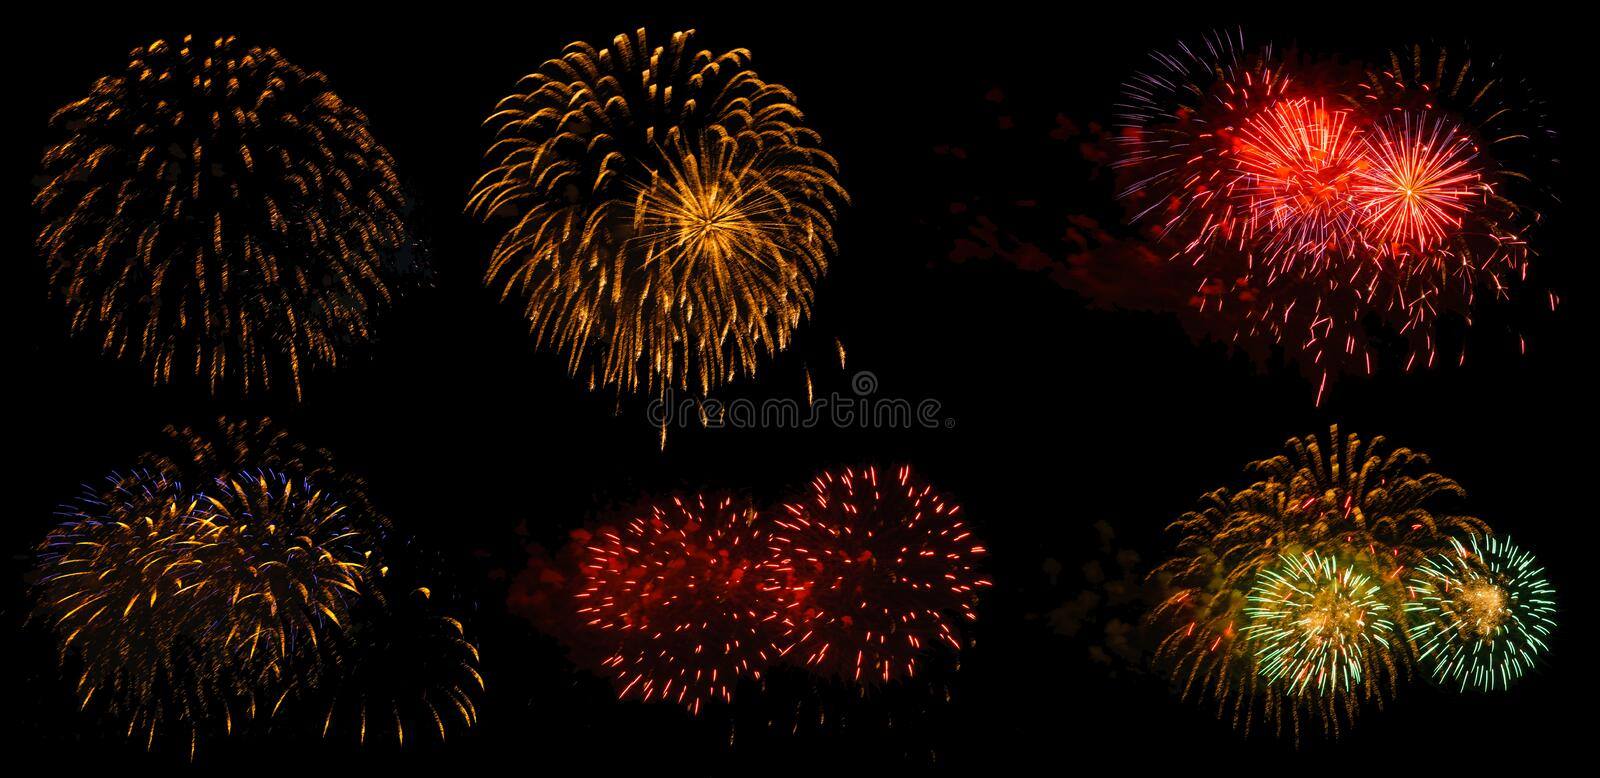 Fireworks on a black background isolated stock photo